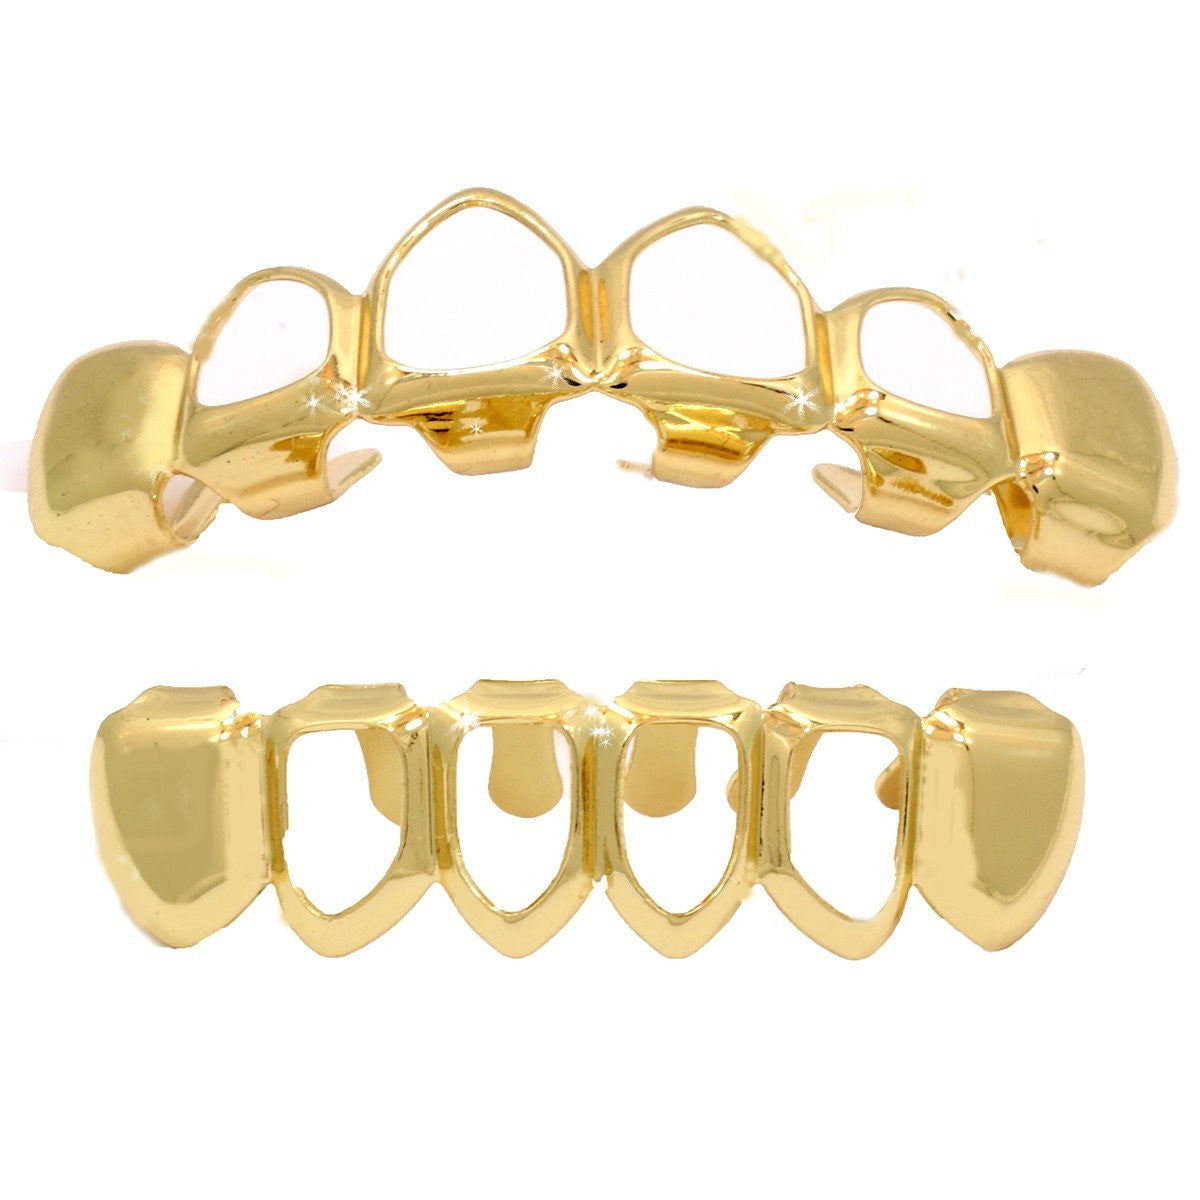 GRILLZ SET BLINGKINGSTAR OPEN